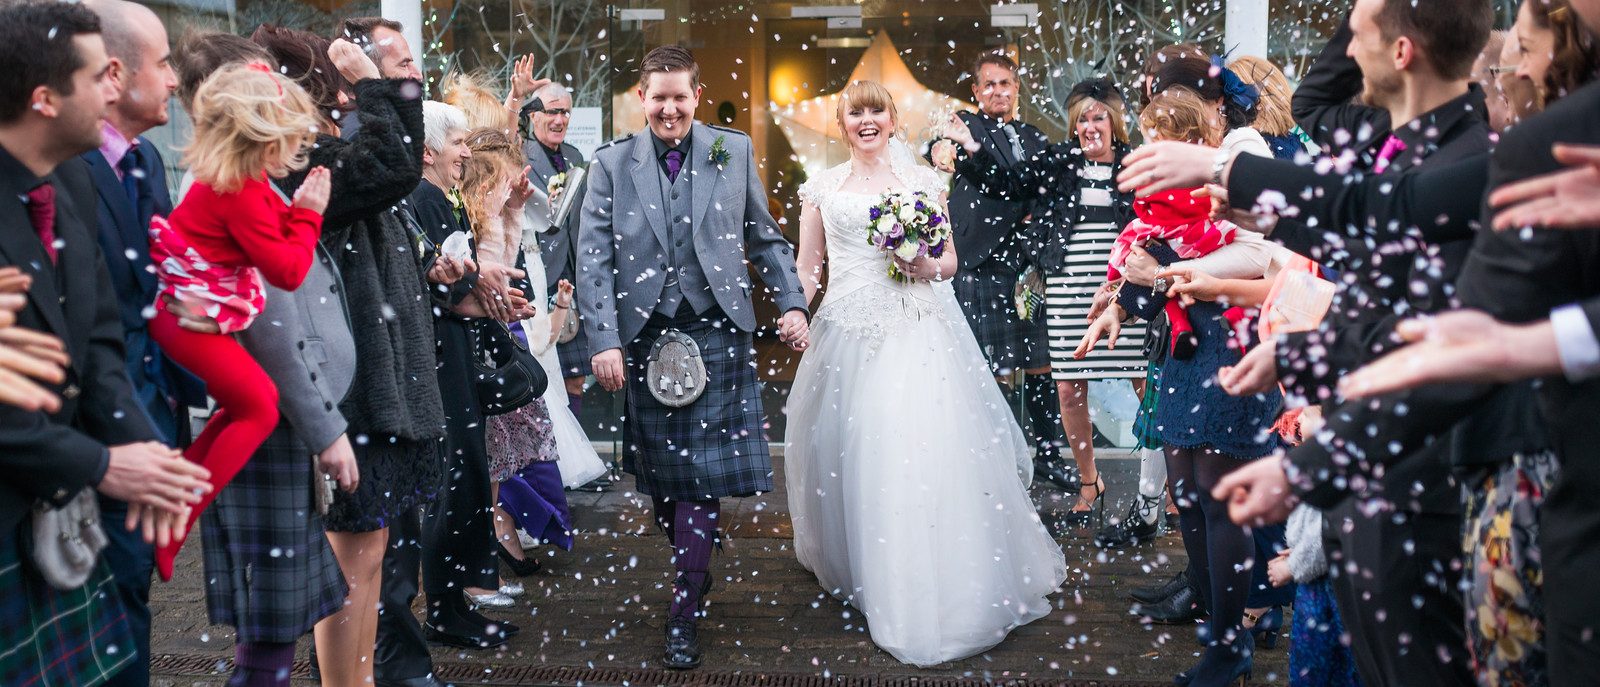 top ten reasons to have an autumn or winter wedding